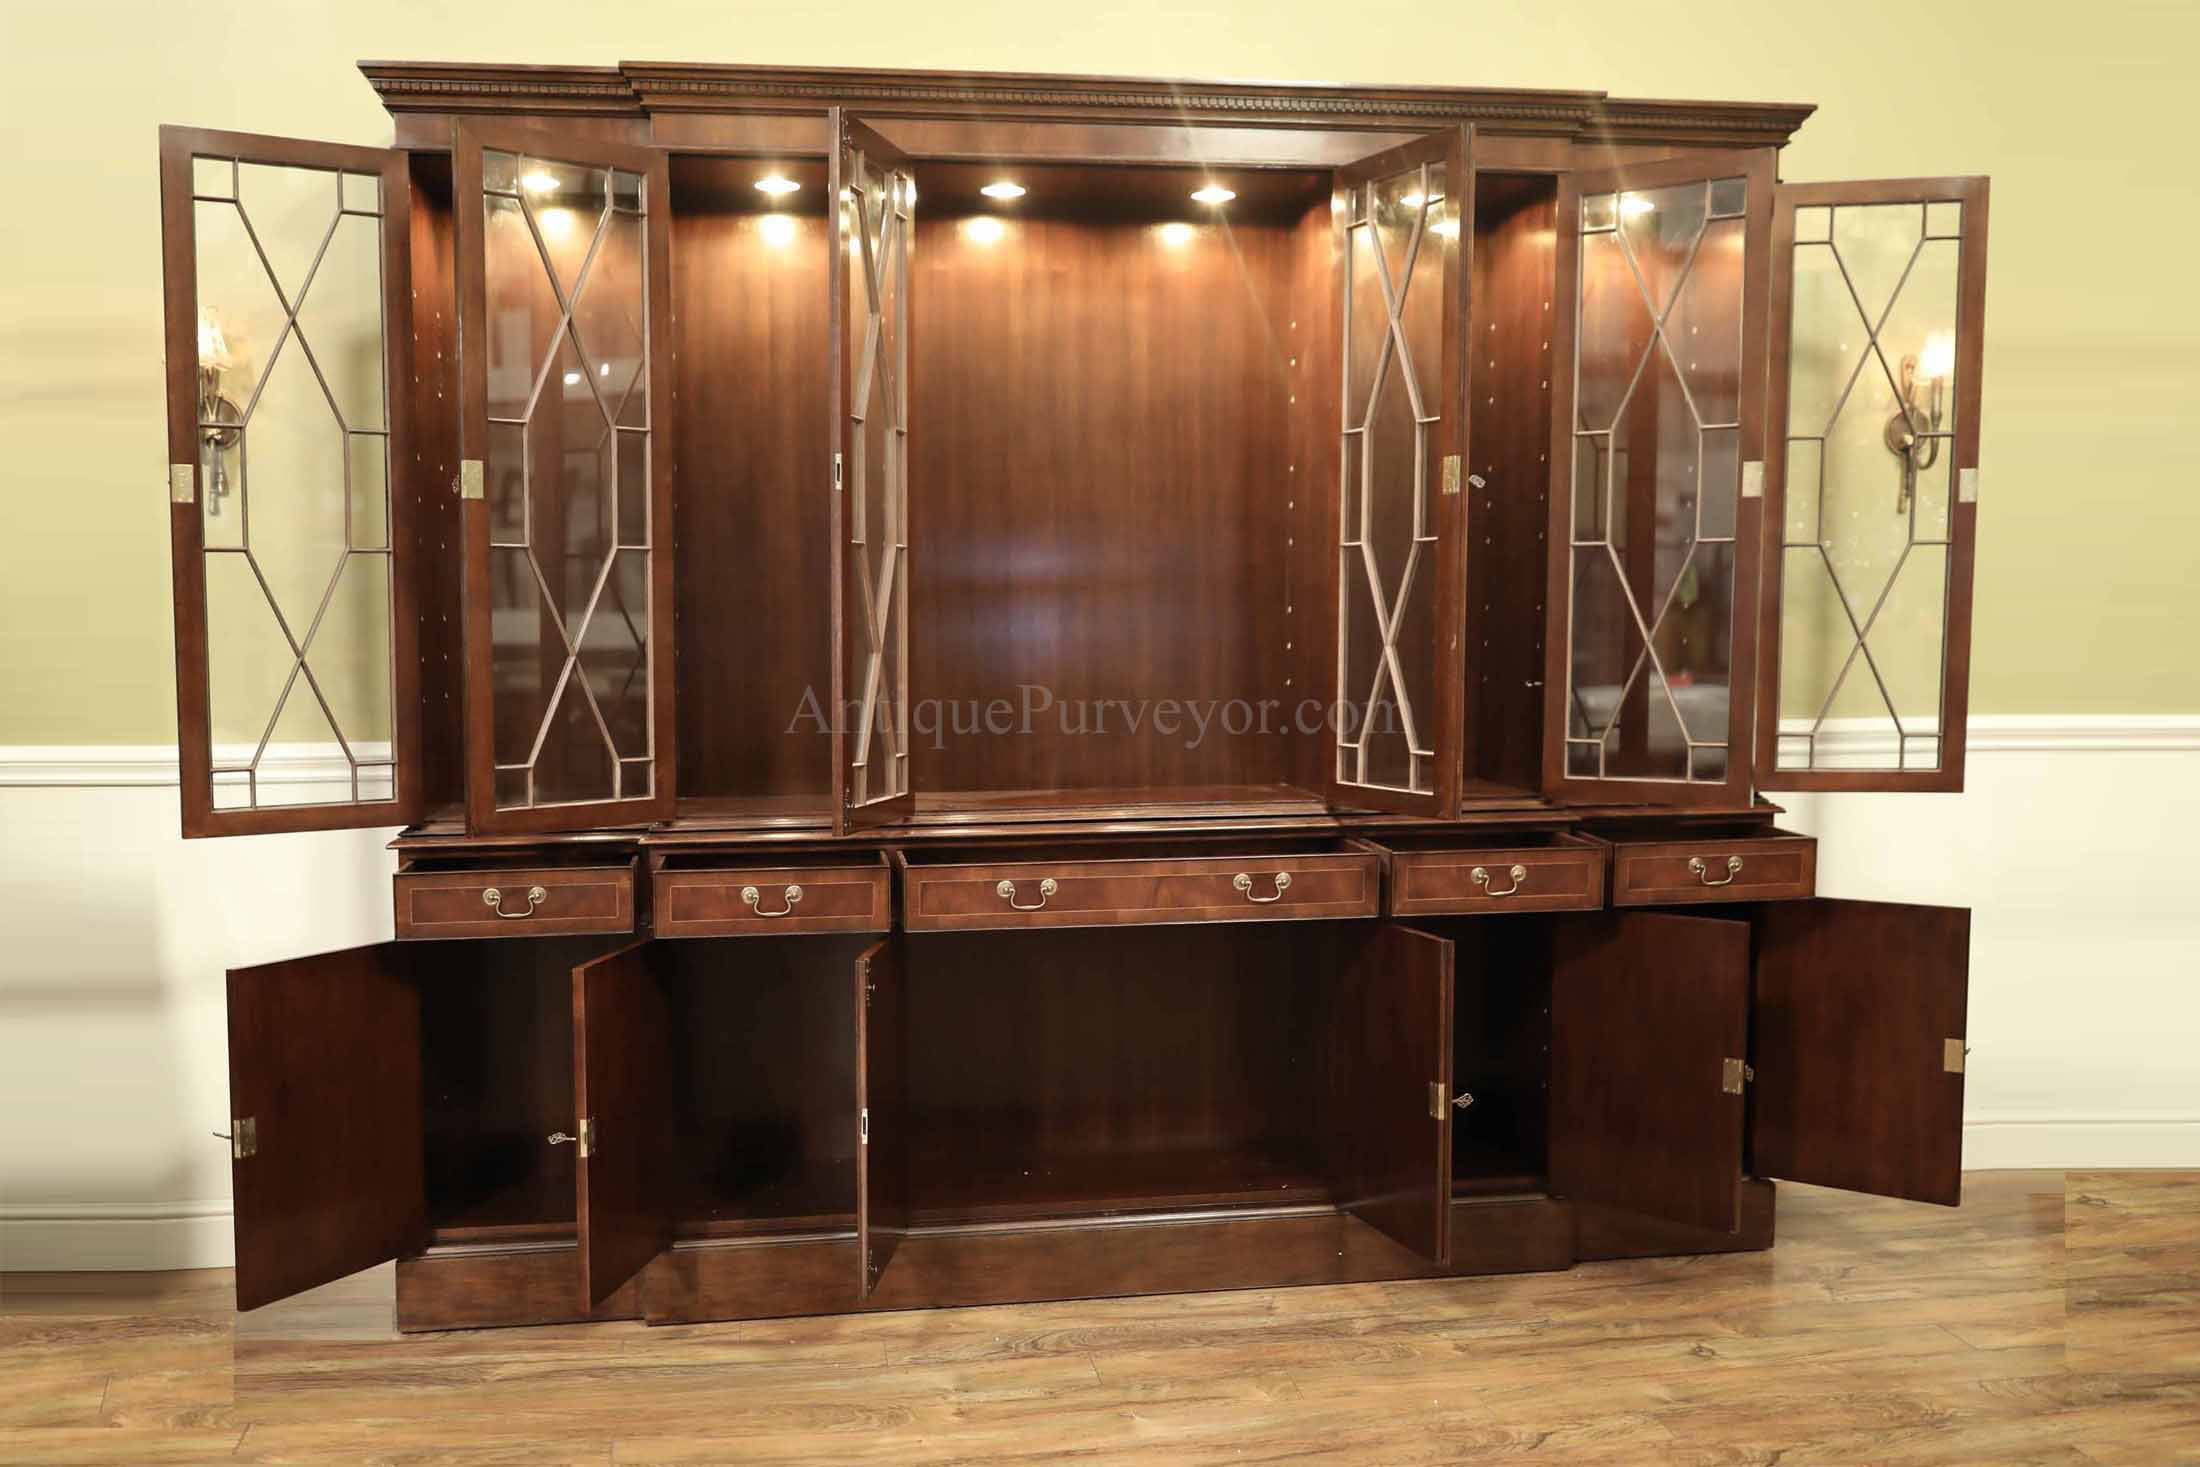 Large mahogany china cabinets for sale